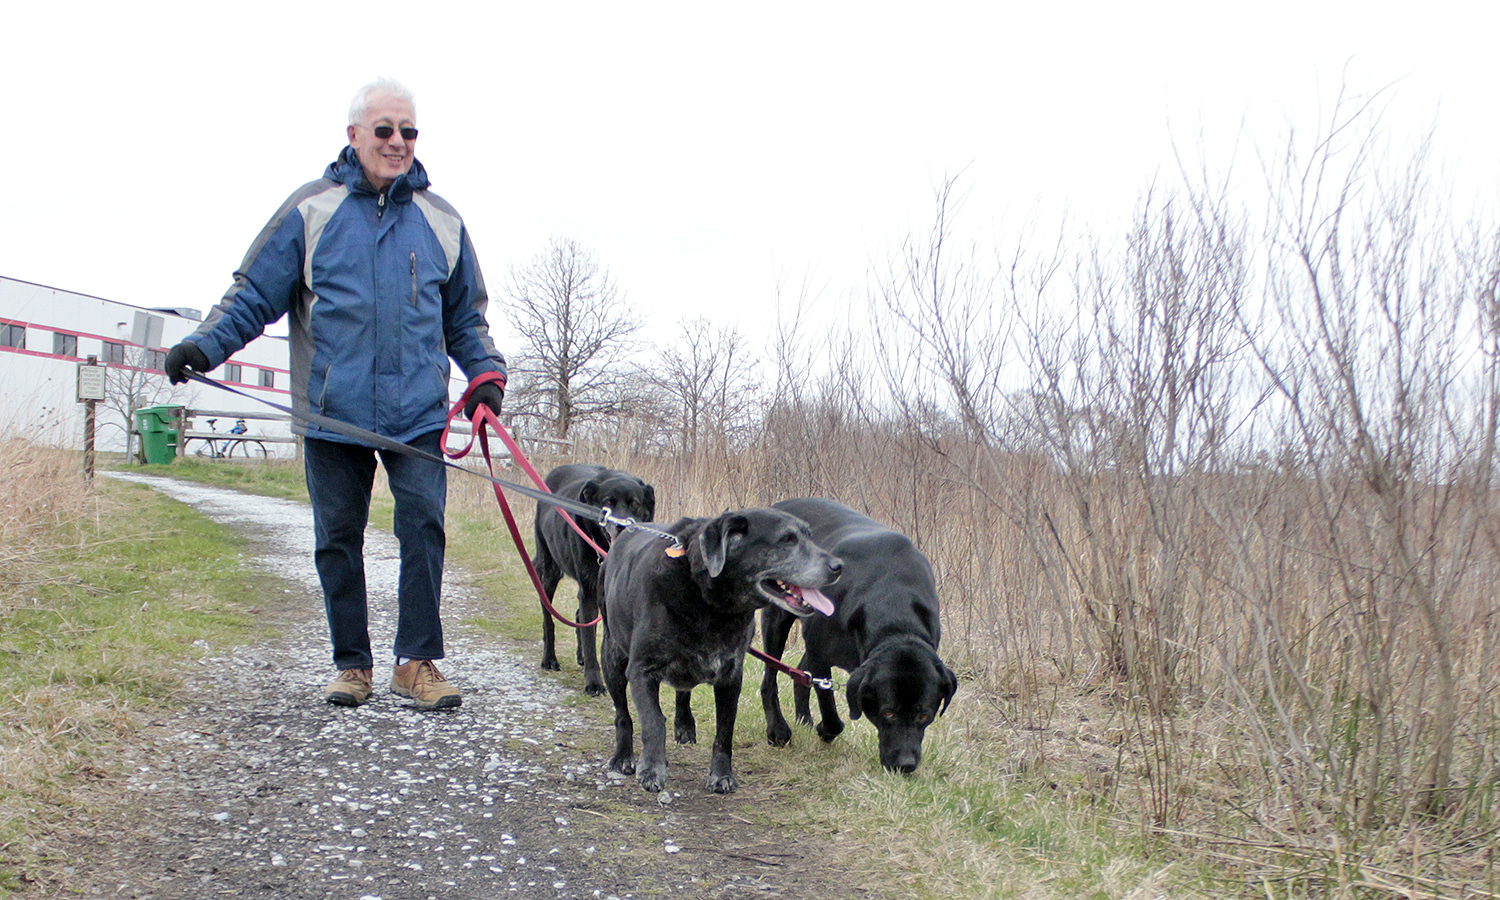 Homewood Mayor Richard Hofeld and crew take a walk in Izaak Walton Nature Preserve in early April. The Hofeld family recently increased with the addition of another black Labrador, Katie. (Eric Crump/H-F Chronicle)